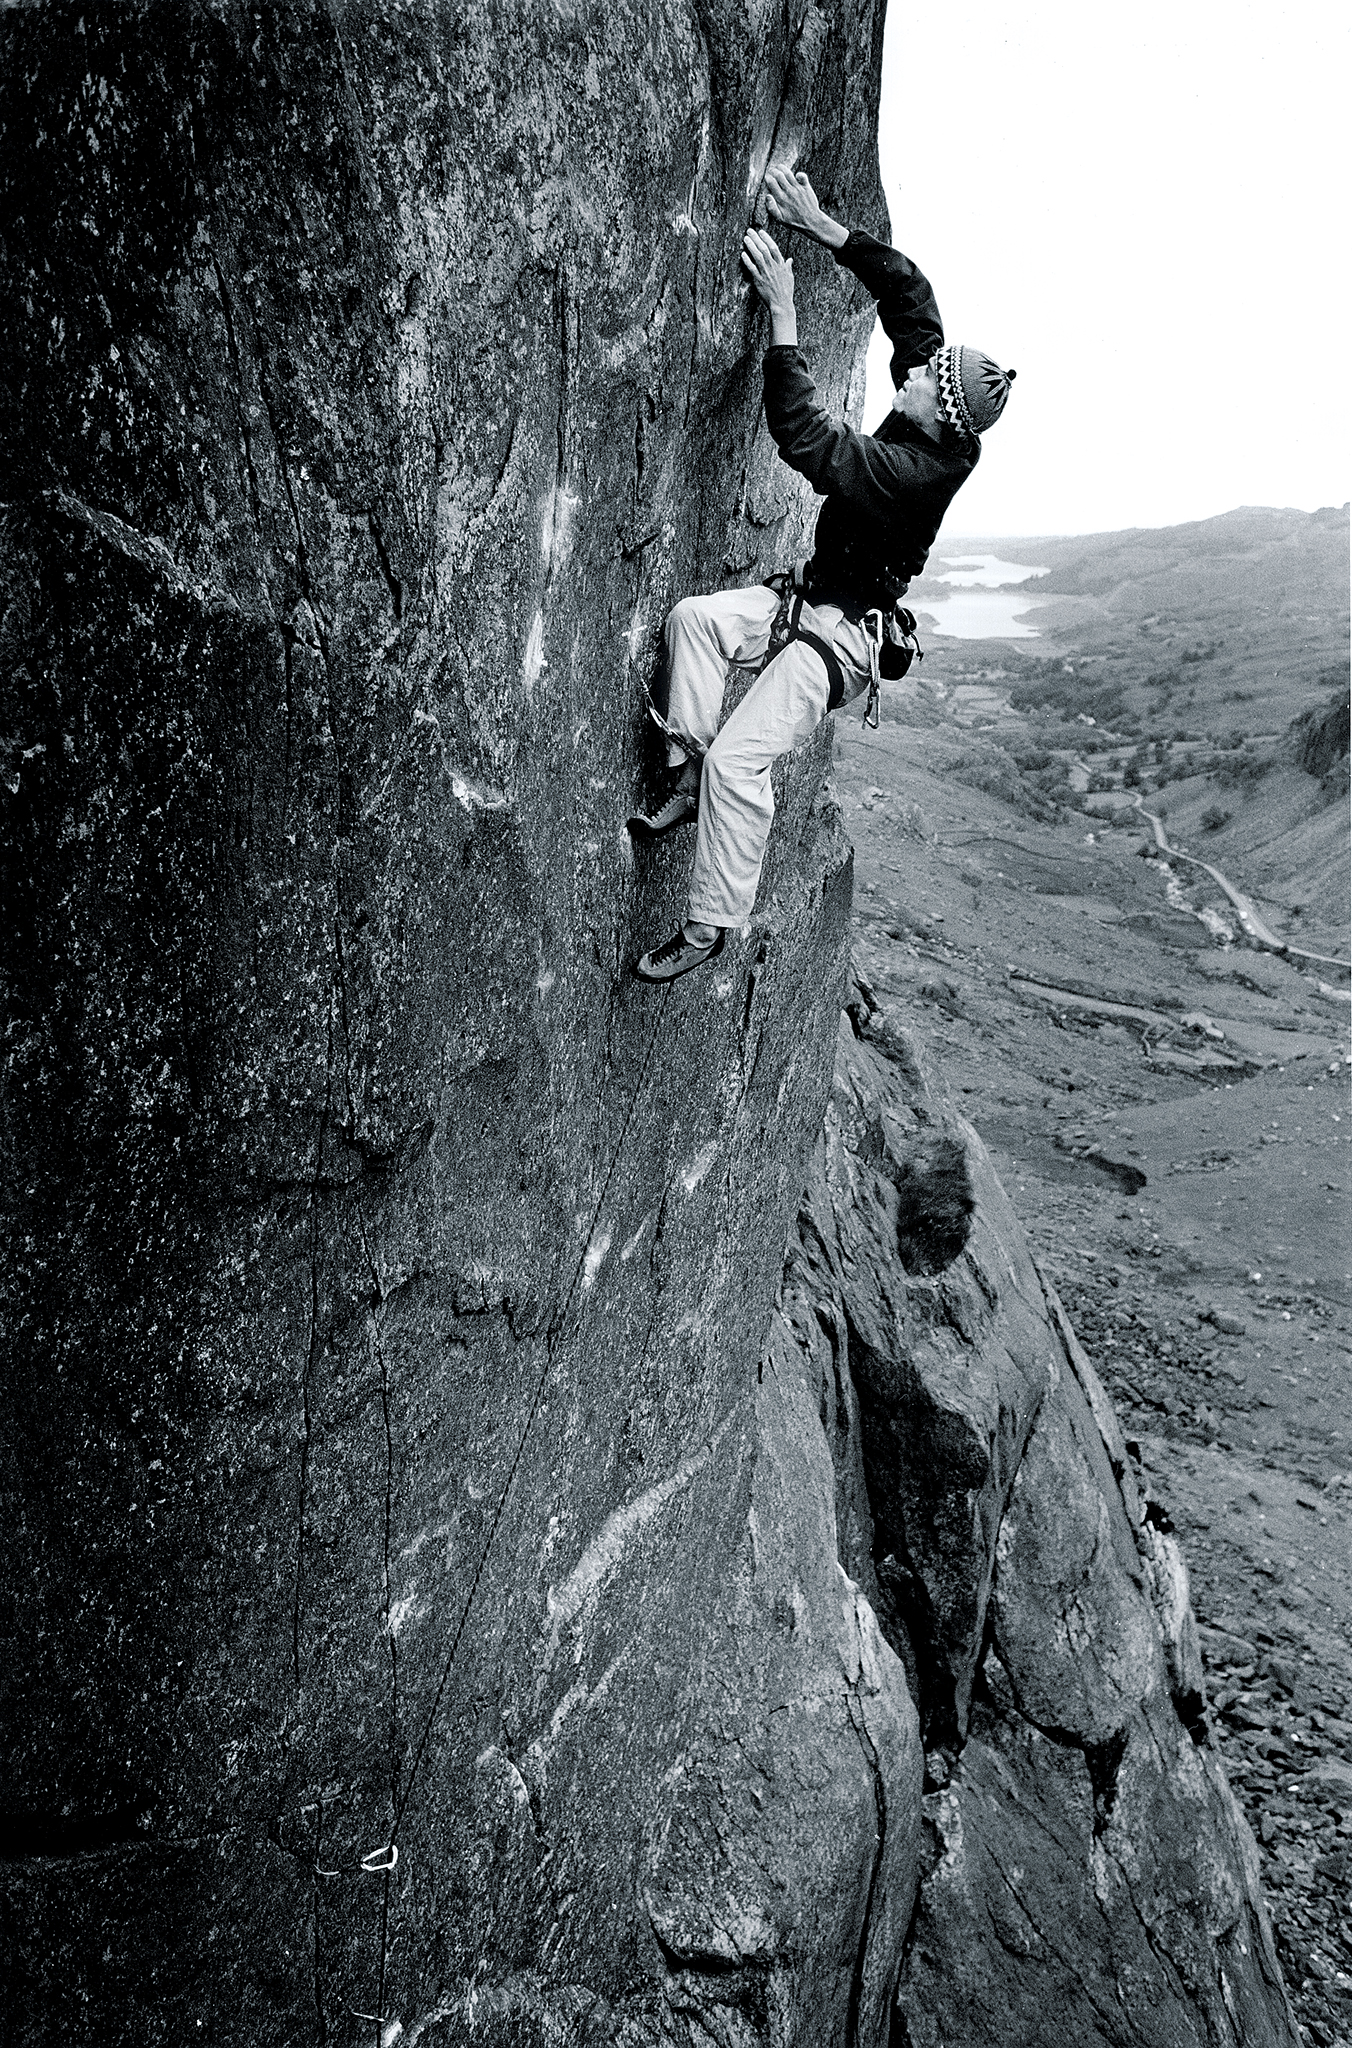 Leo Houlding on the first ascent of  Trauma  E8 7a, Dinas Mot, Llanberis Pass, North Wales